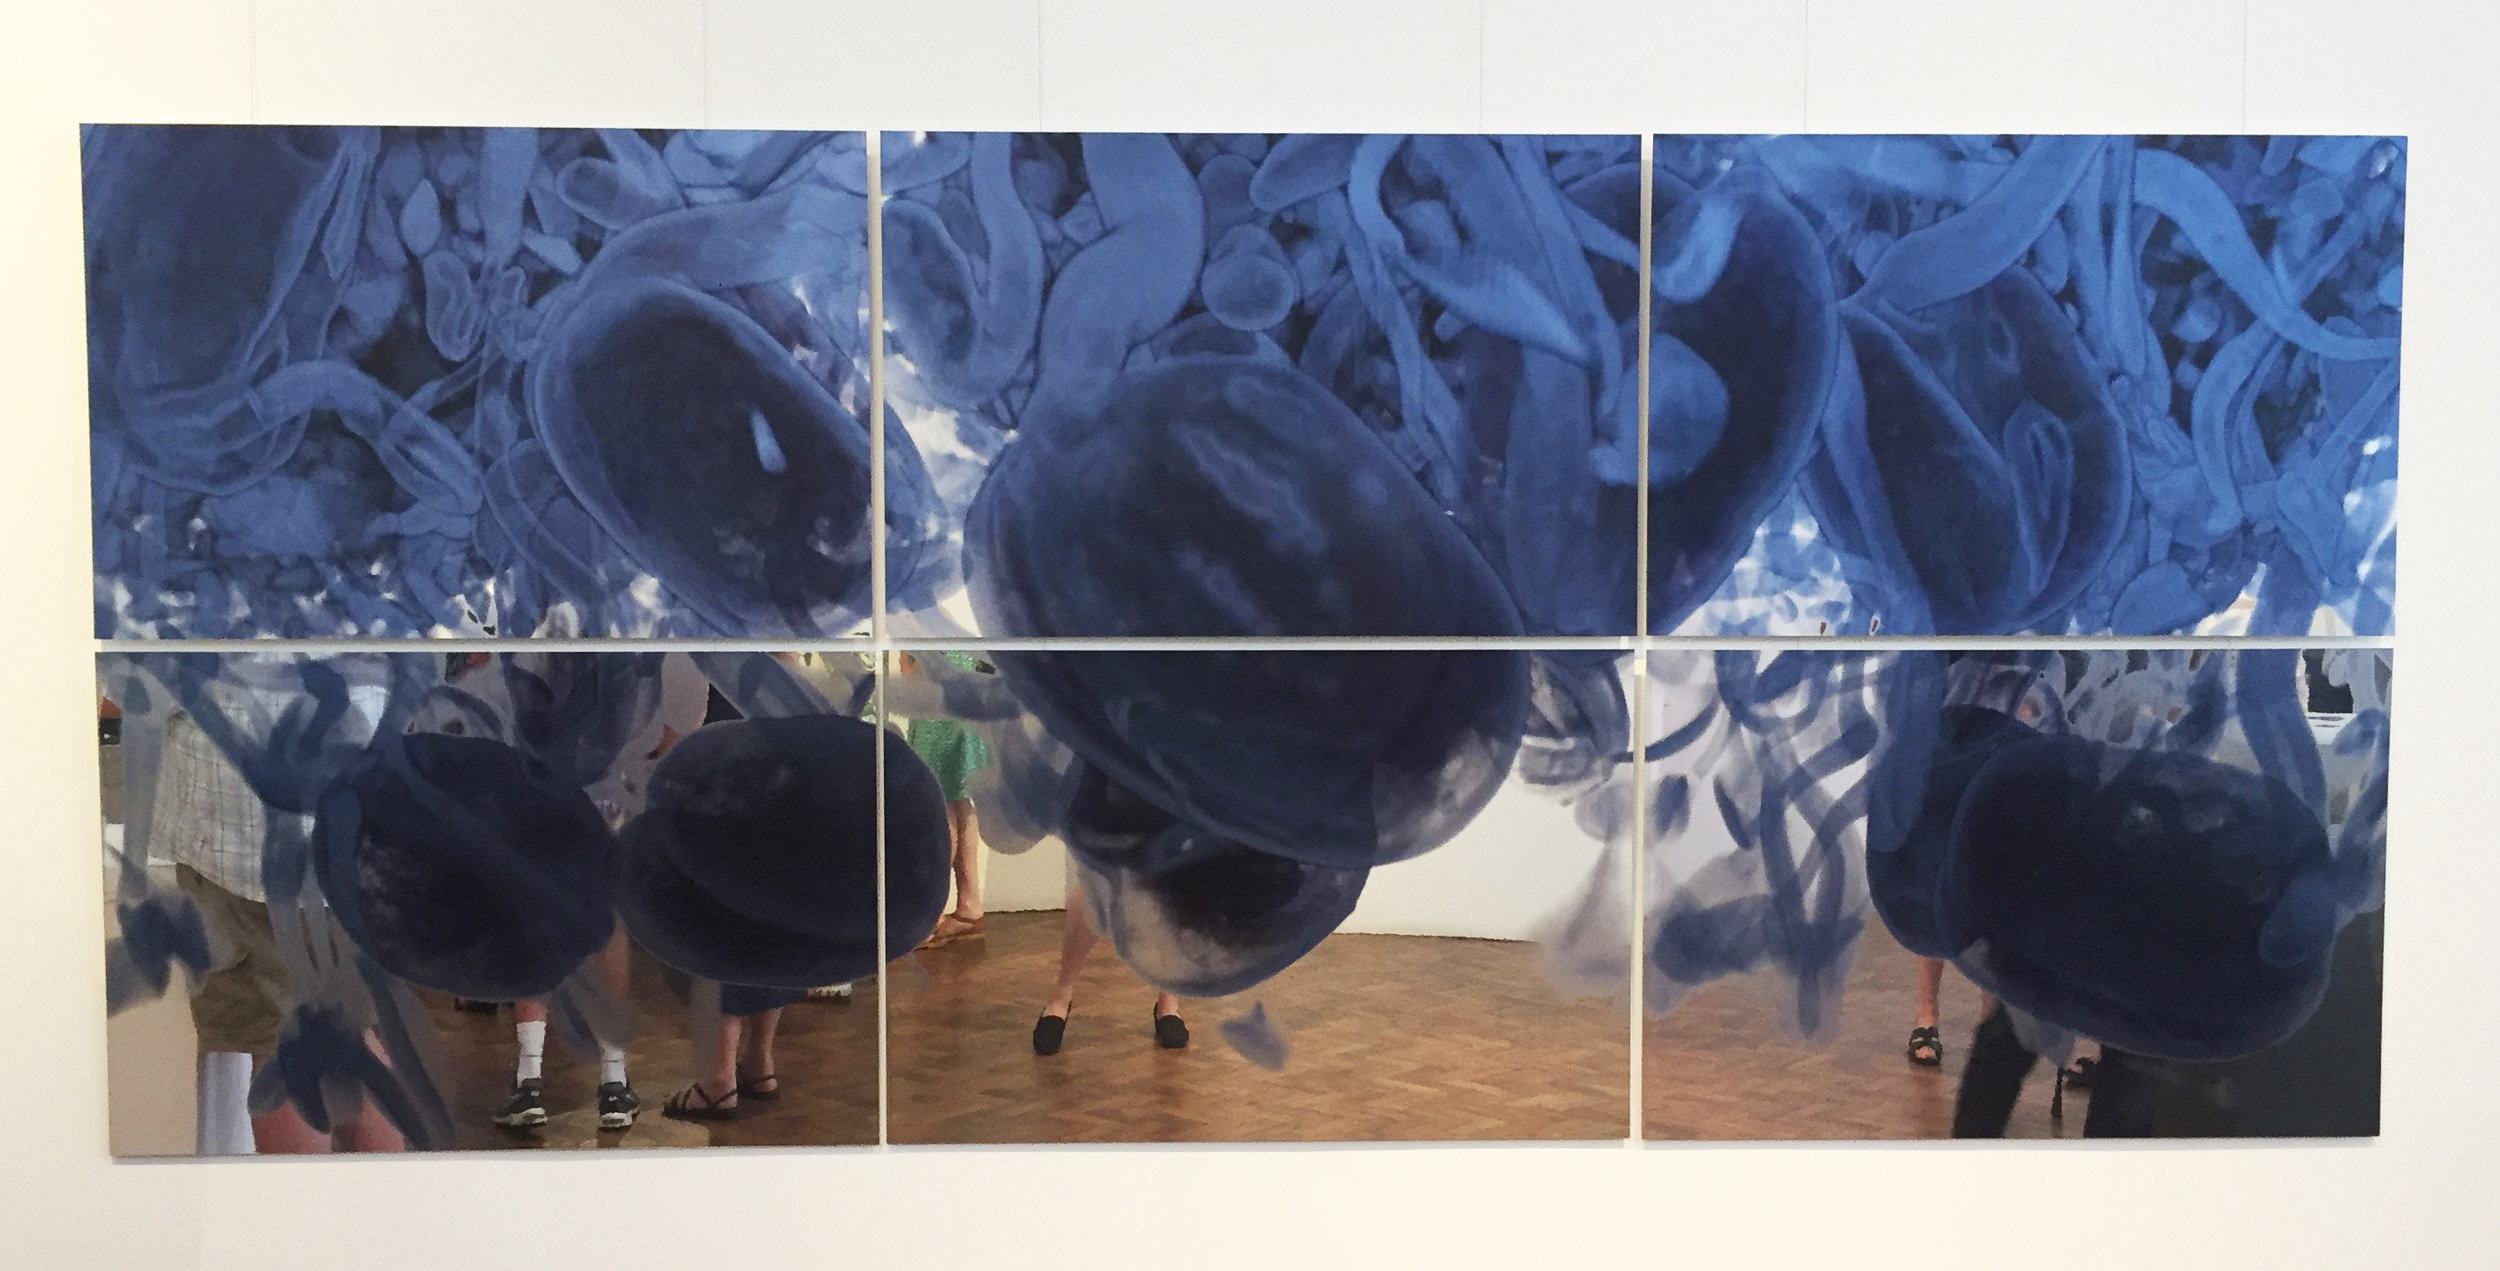 Erica Seccombe,  In Our Time , 2016, 6 panels, 3600 x 1600 mm,inkjet print mirrored aluminium, Photo curtesy Goulburn Regional Art Gallery 2017.